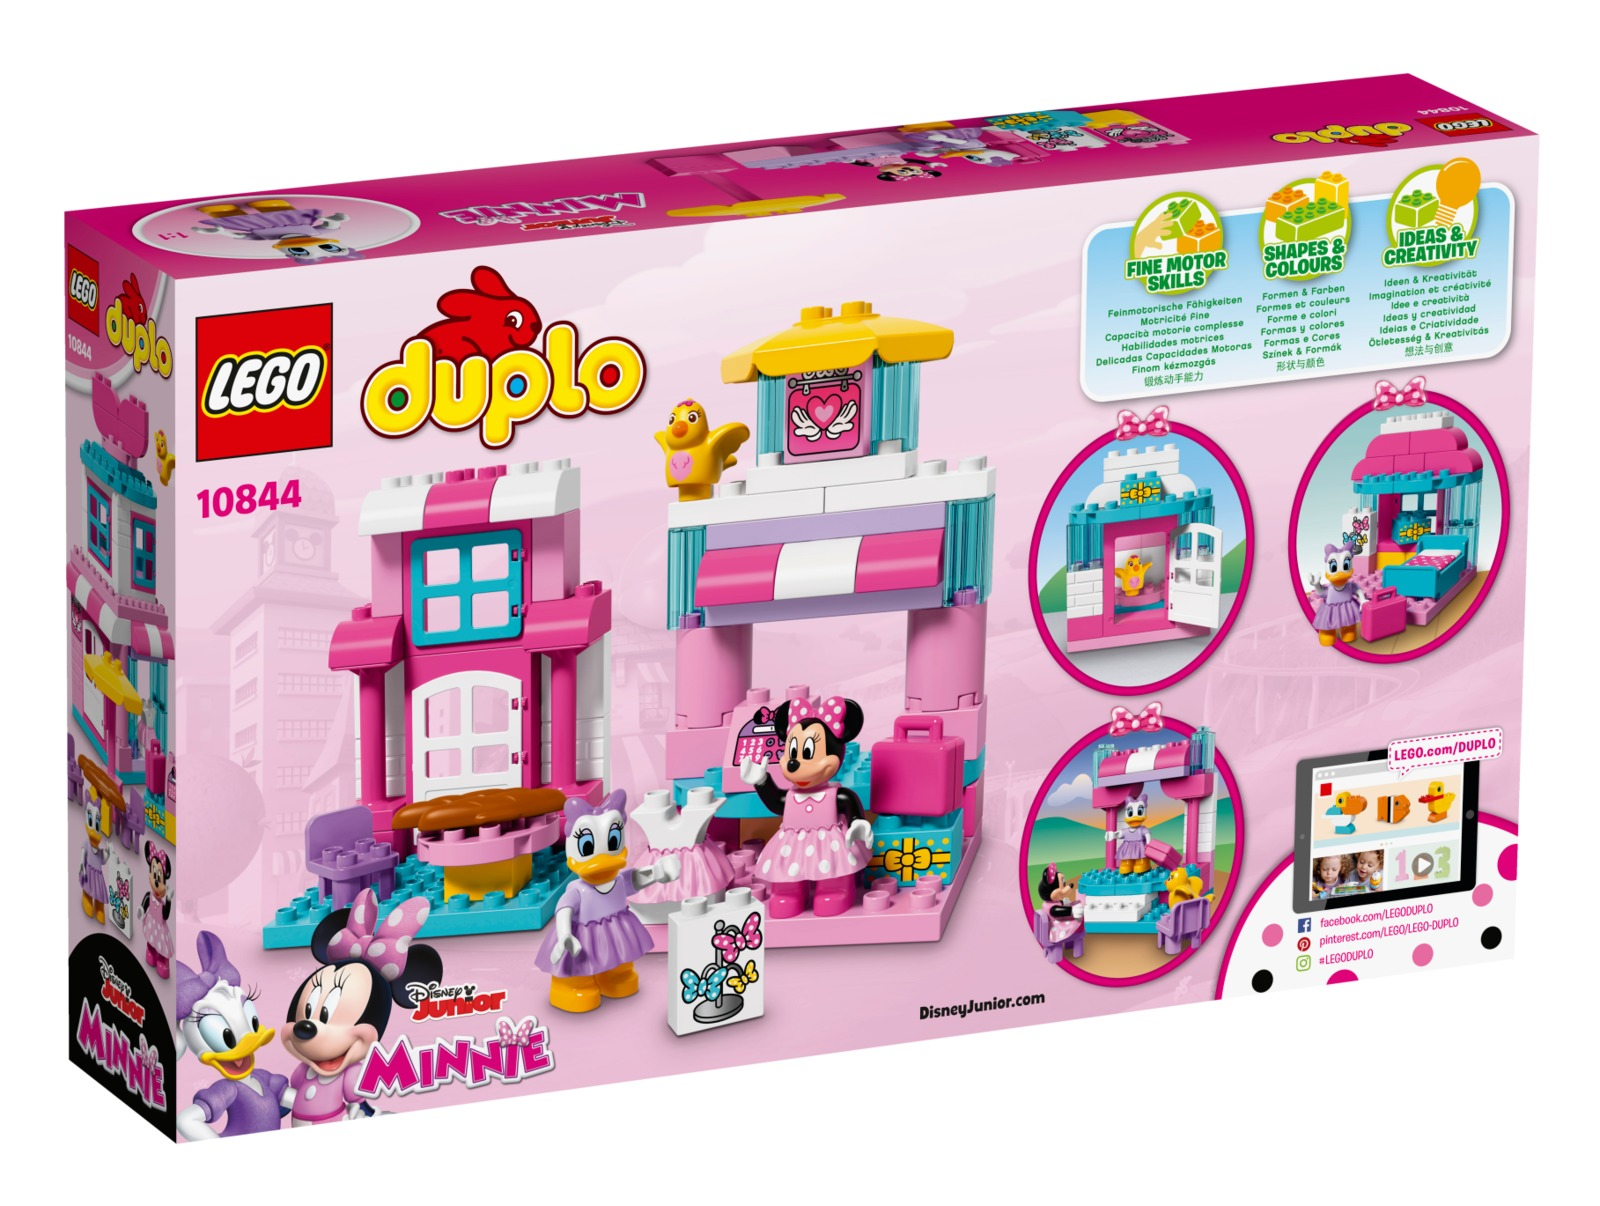 LEGO DUPLO: Minnie Mouse Bow-tique (10844) image